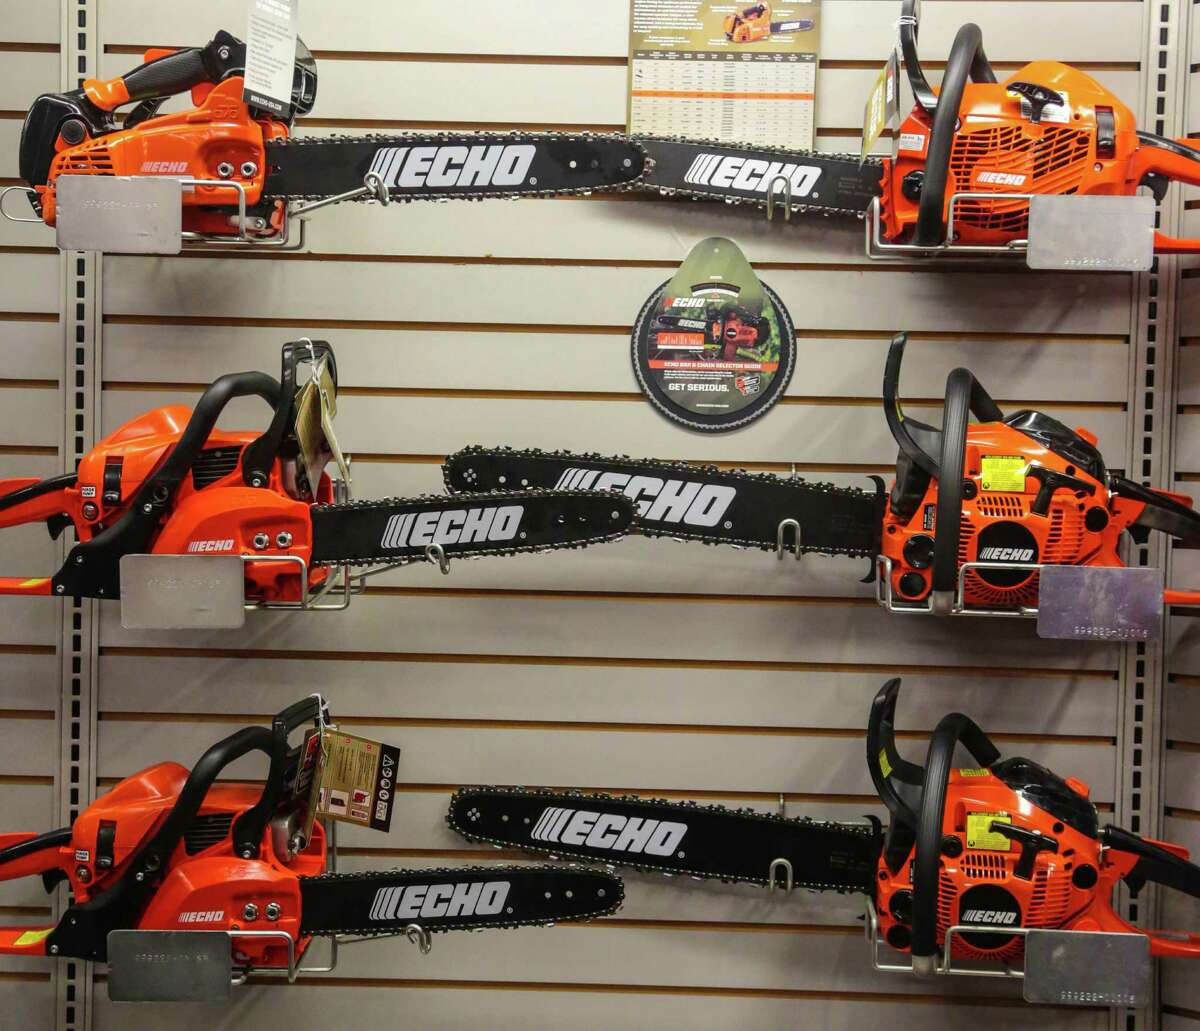 Chainsaws for sale at Saw House Tuesday March 10, 2015. The Cantu's started Saw House a power equipment supply company which sells saws and other tree maintenance equipment. (Billy Smith II / Houston Chronicle)